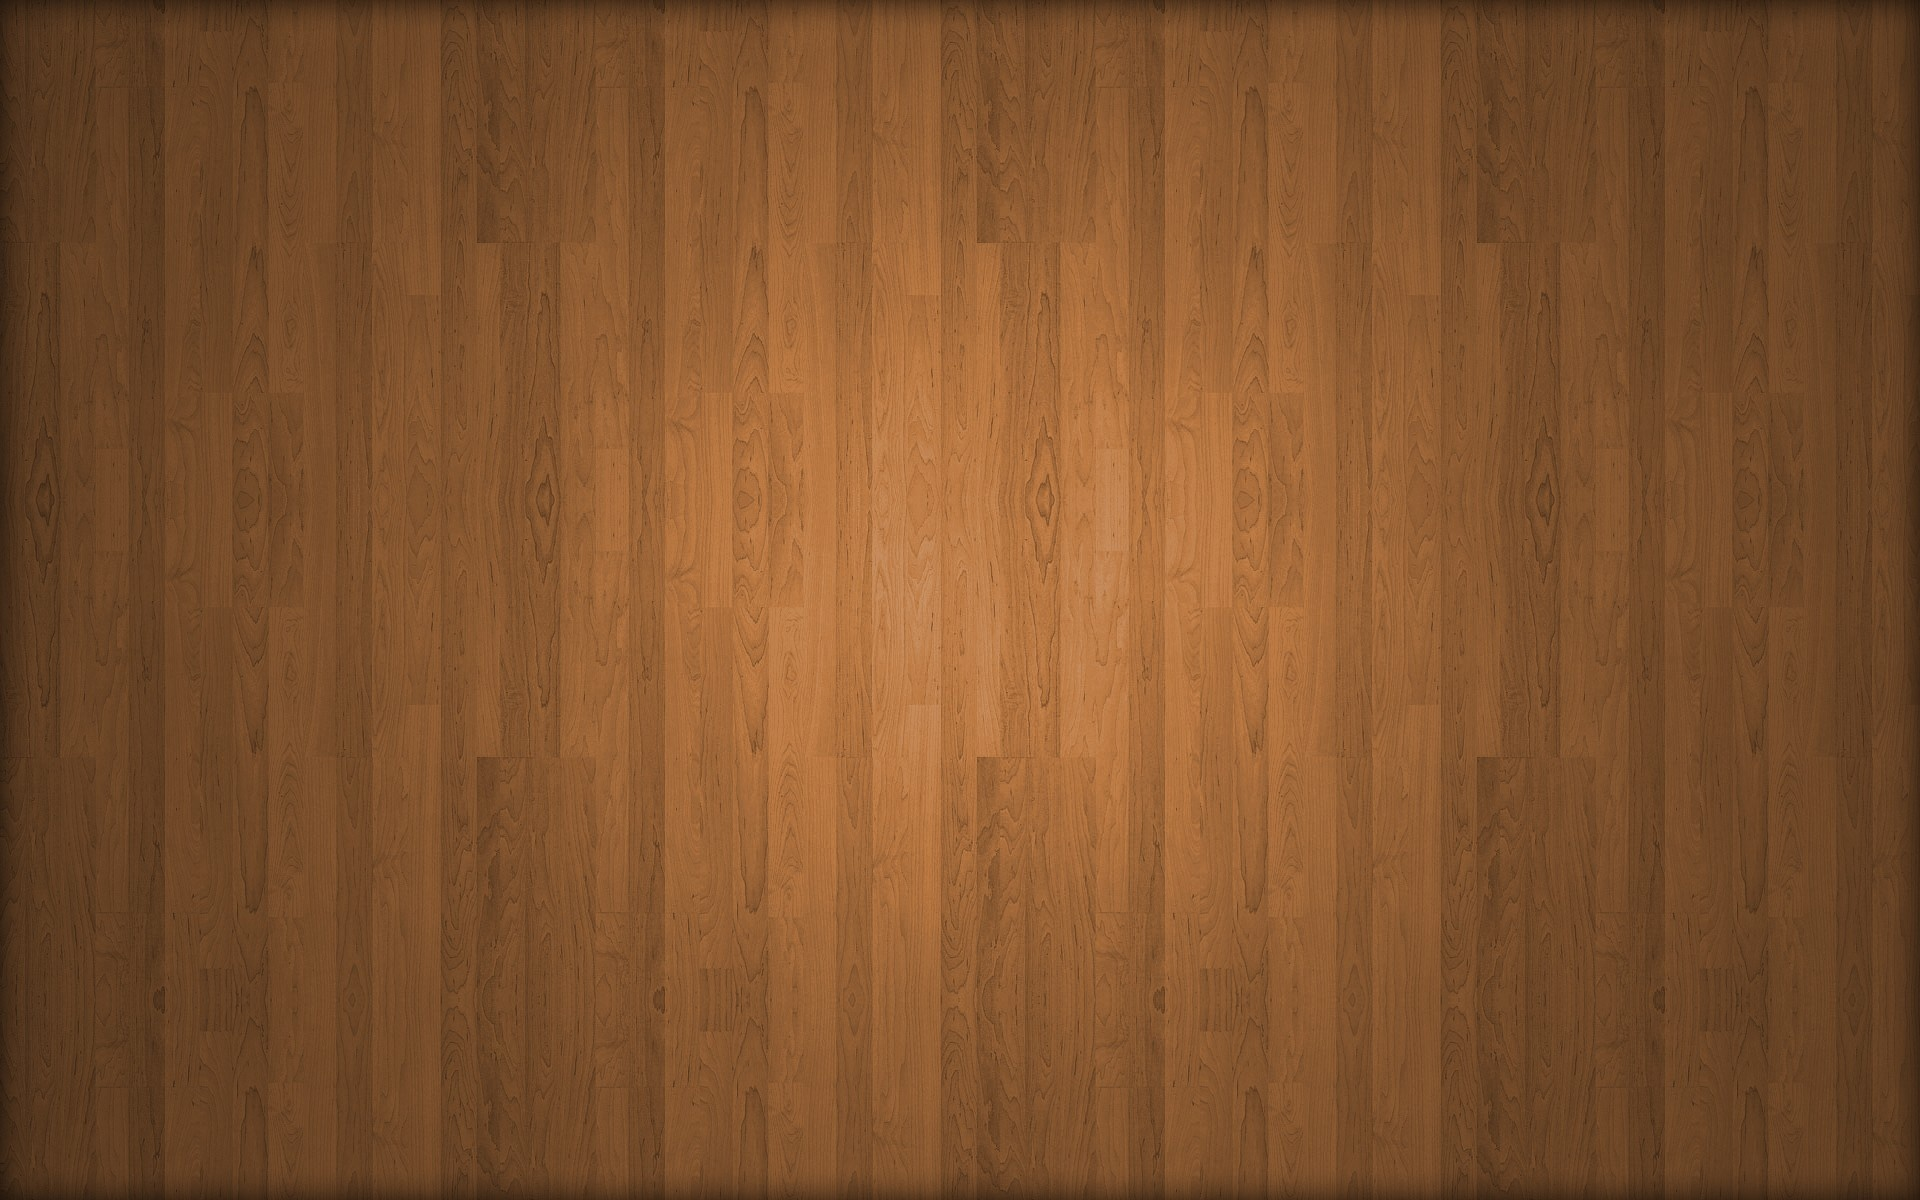 Wood clipart wood wall Cliparts Wood panel Wall Clipart